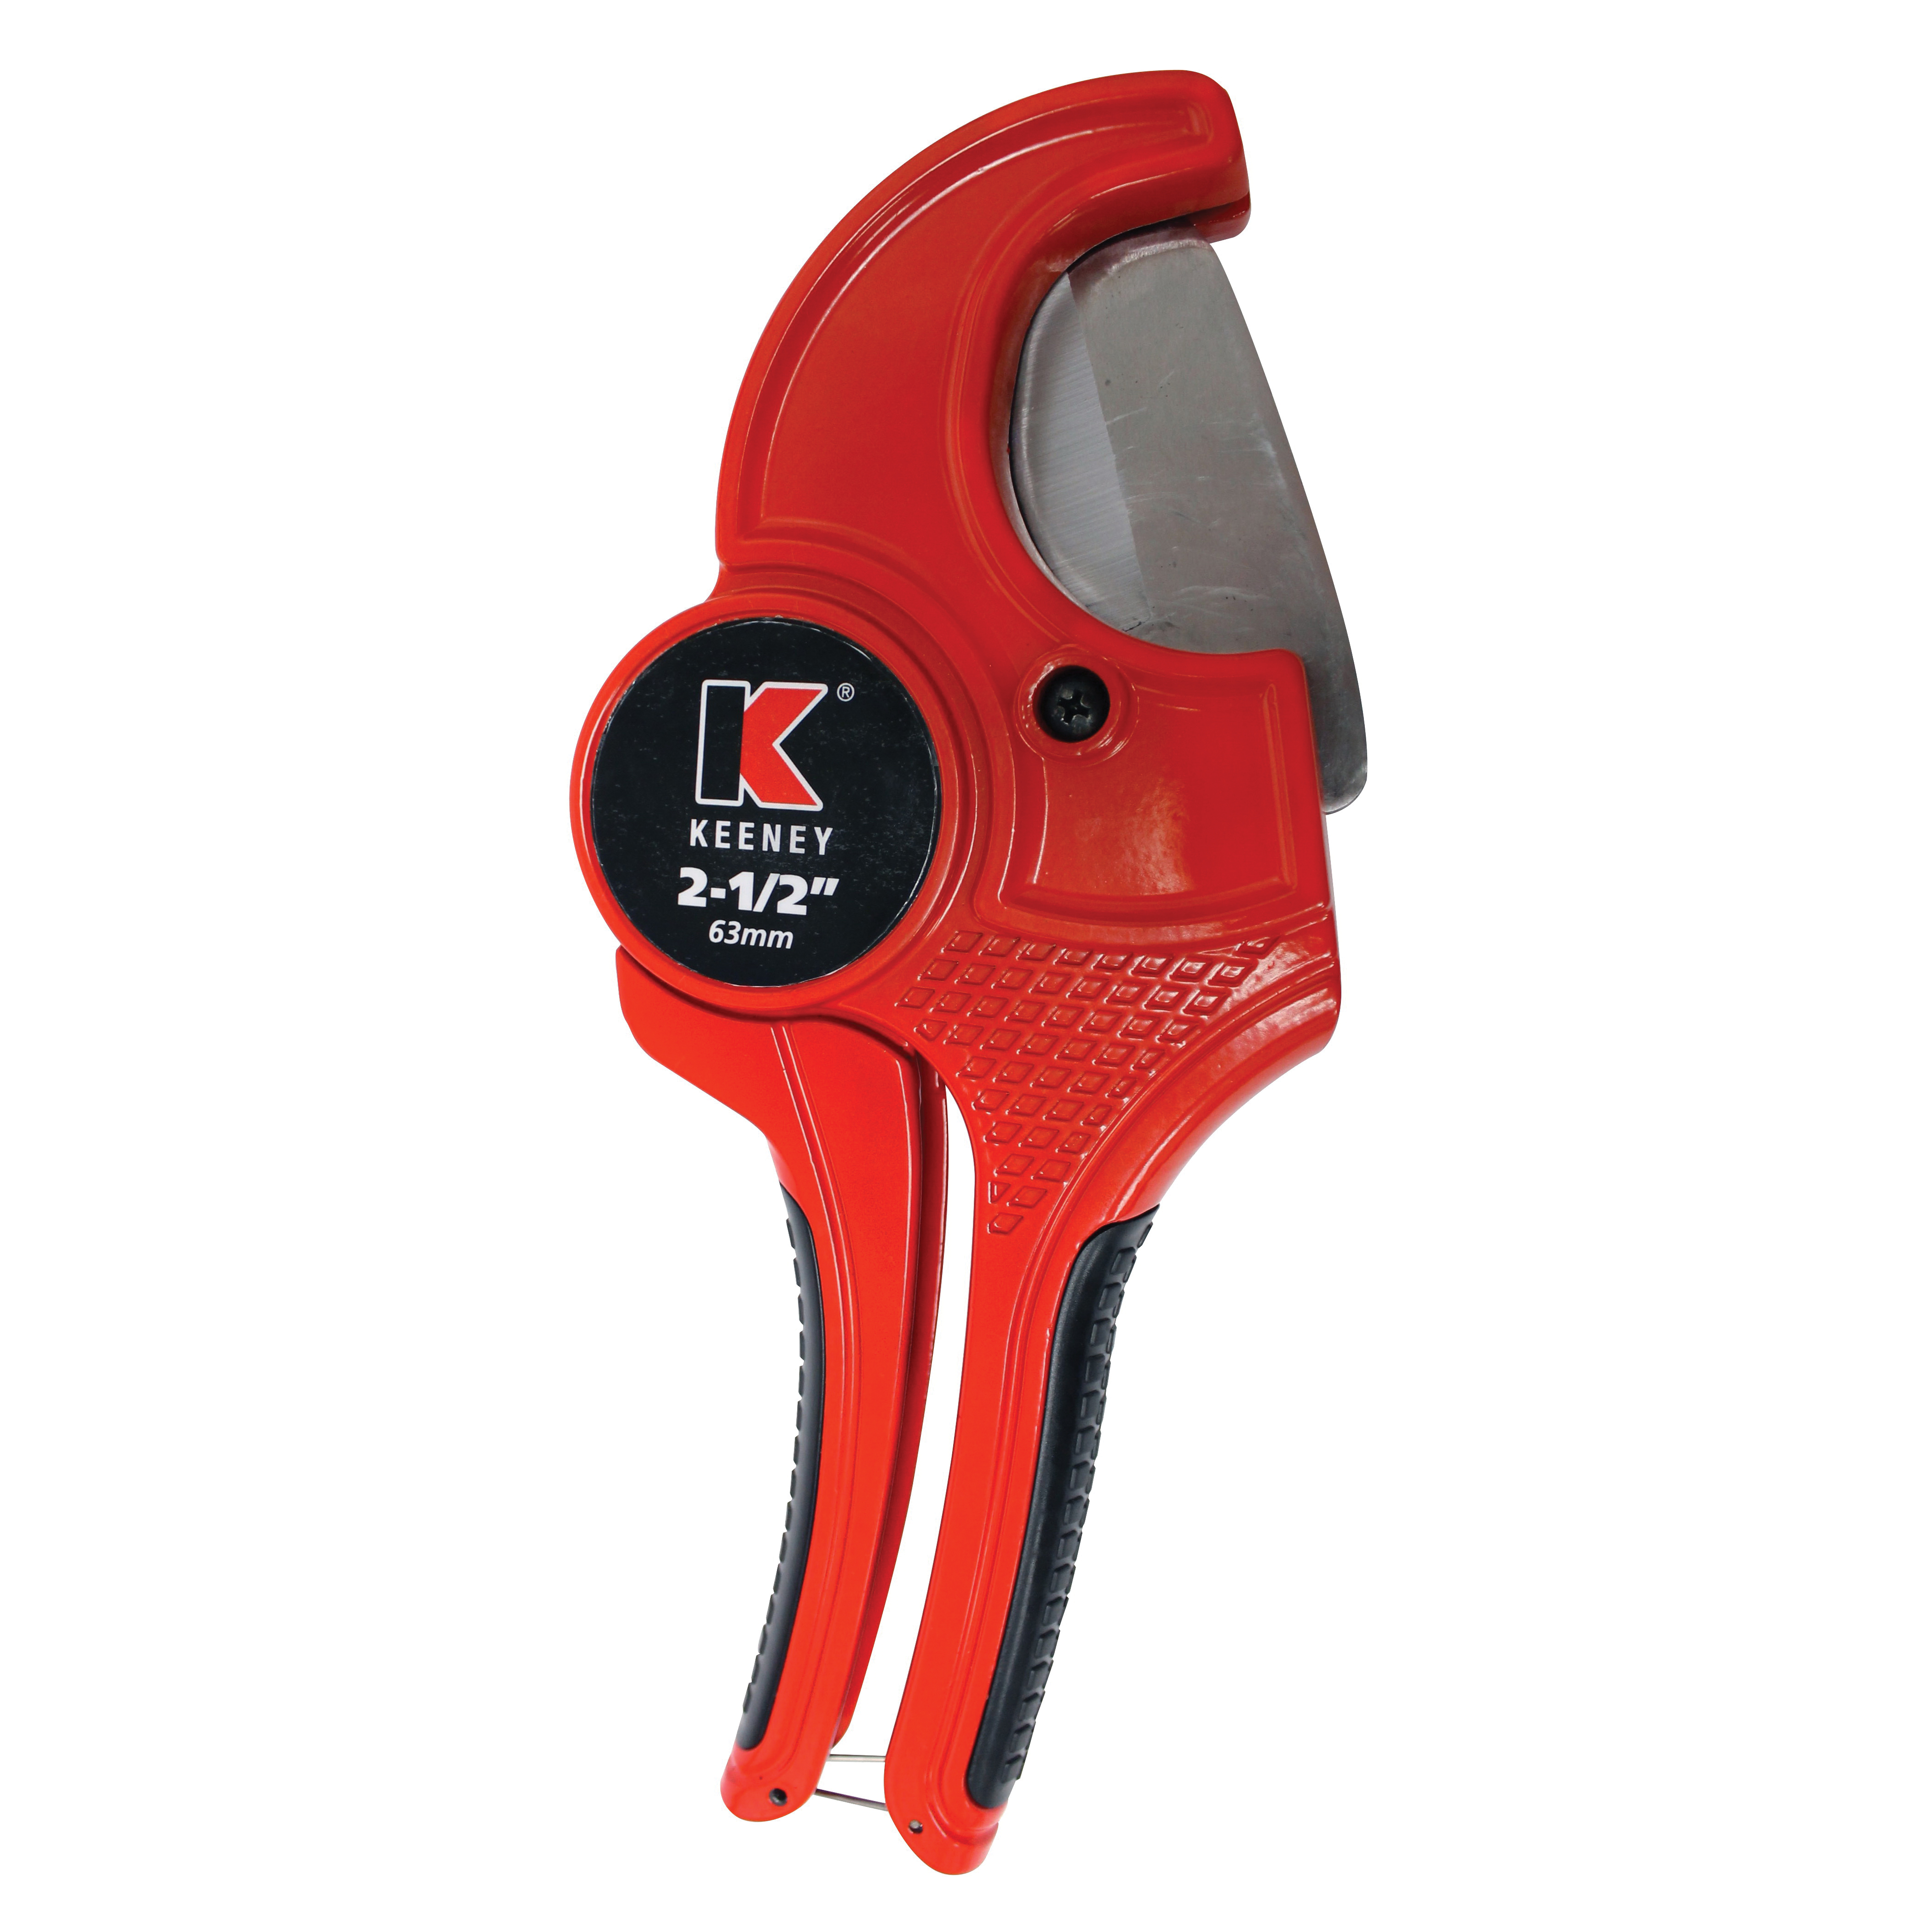 Picture of Keeney K840-102 Pipe Cutter, 2-1/2 in Max Pipe/Tube Dia, HCS Blade